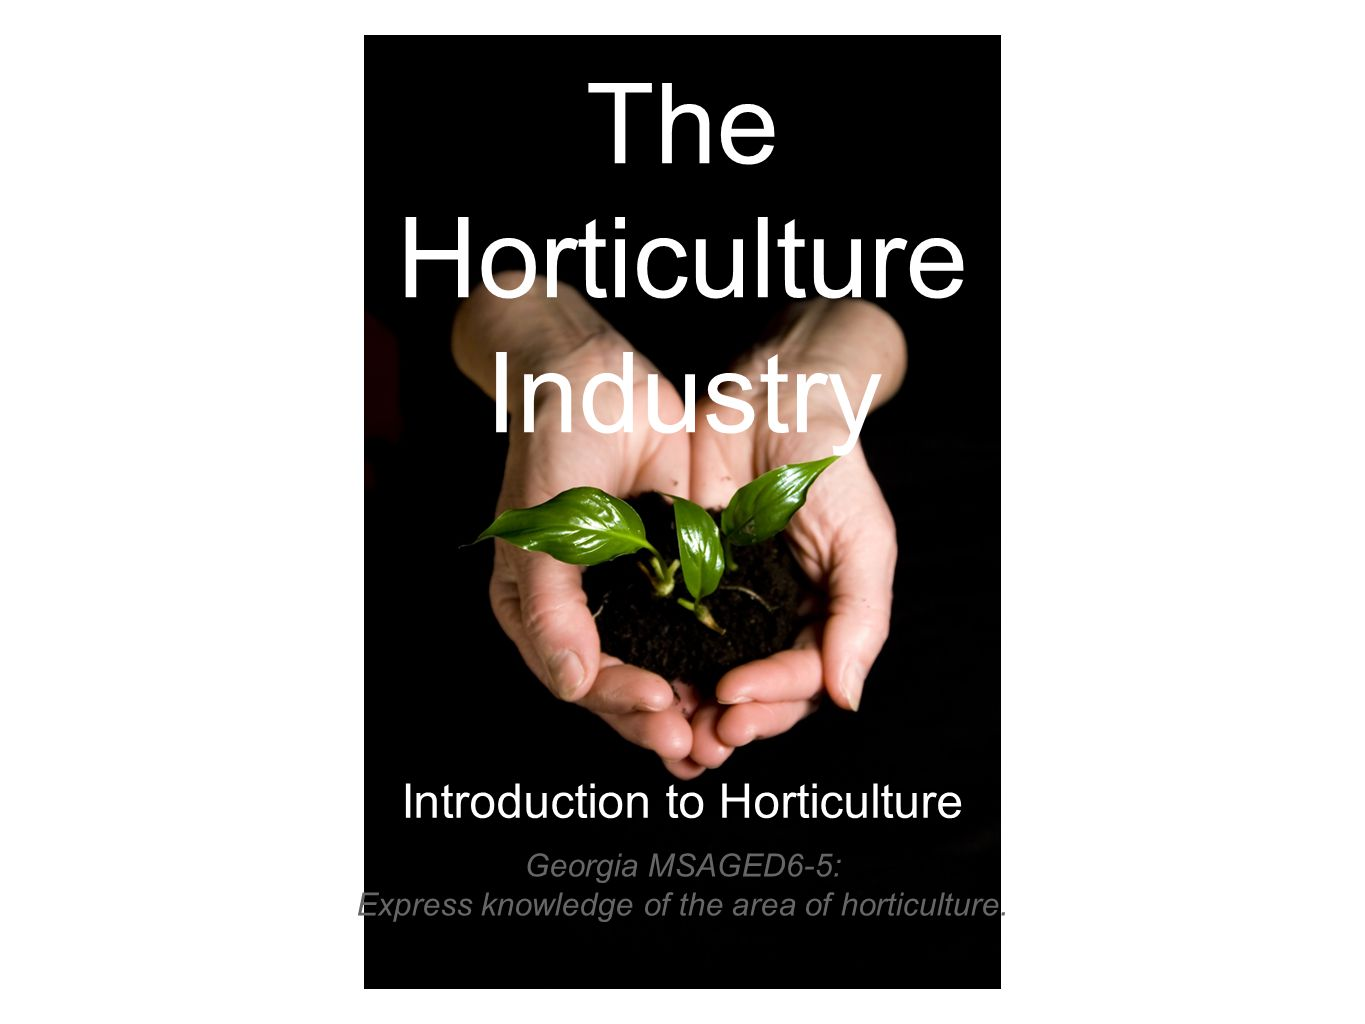 The Horticulture Industry Introduction to Horticulture Georgia MSAGED6-5: Express knowledge of the area of horticulture.